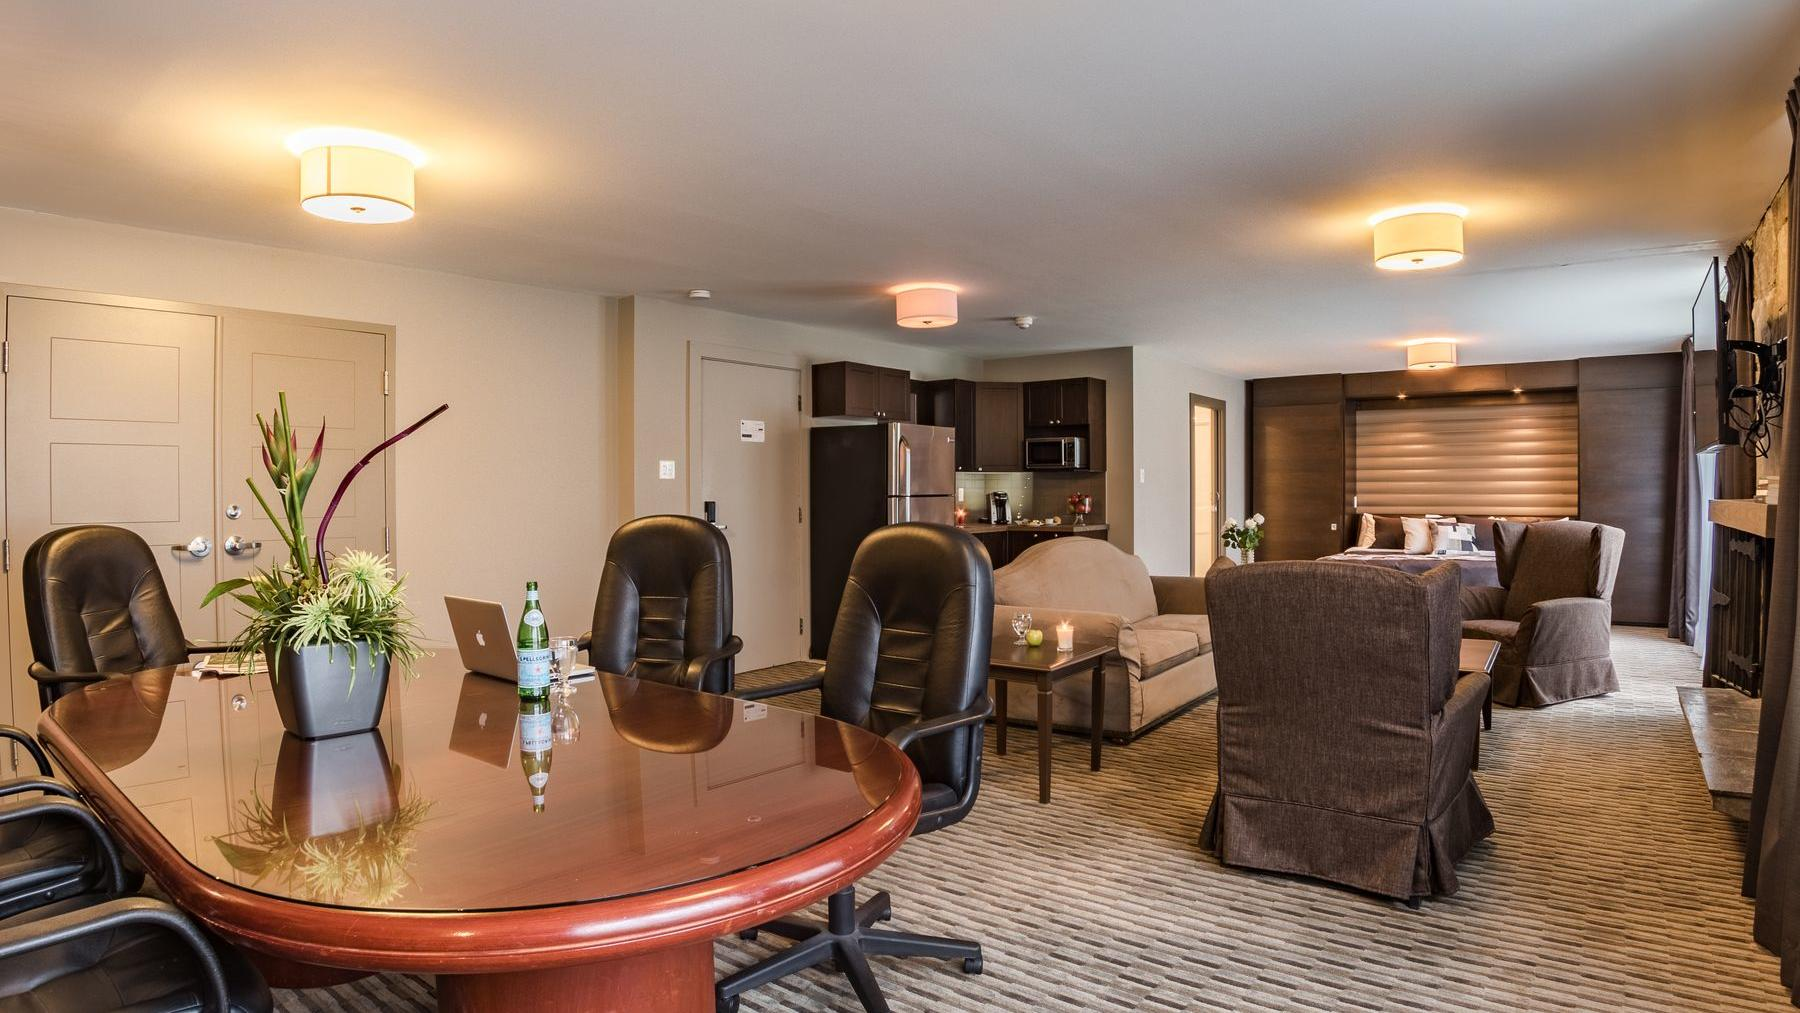 Conference table, couches, and chairs in hotel suite